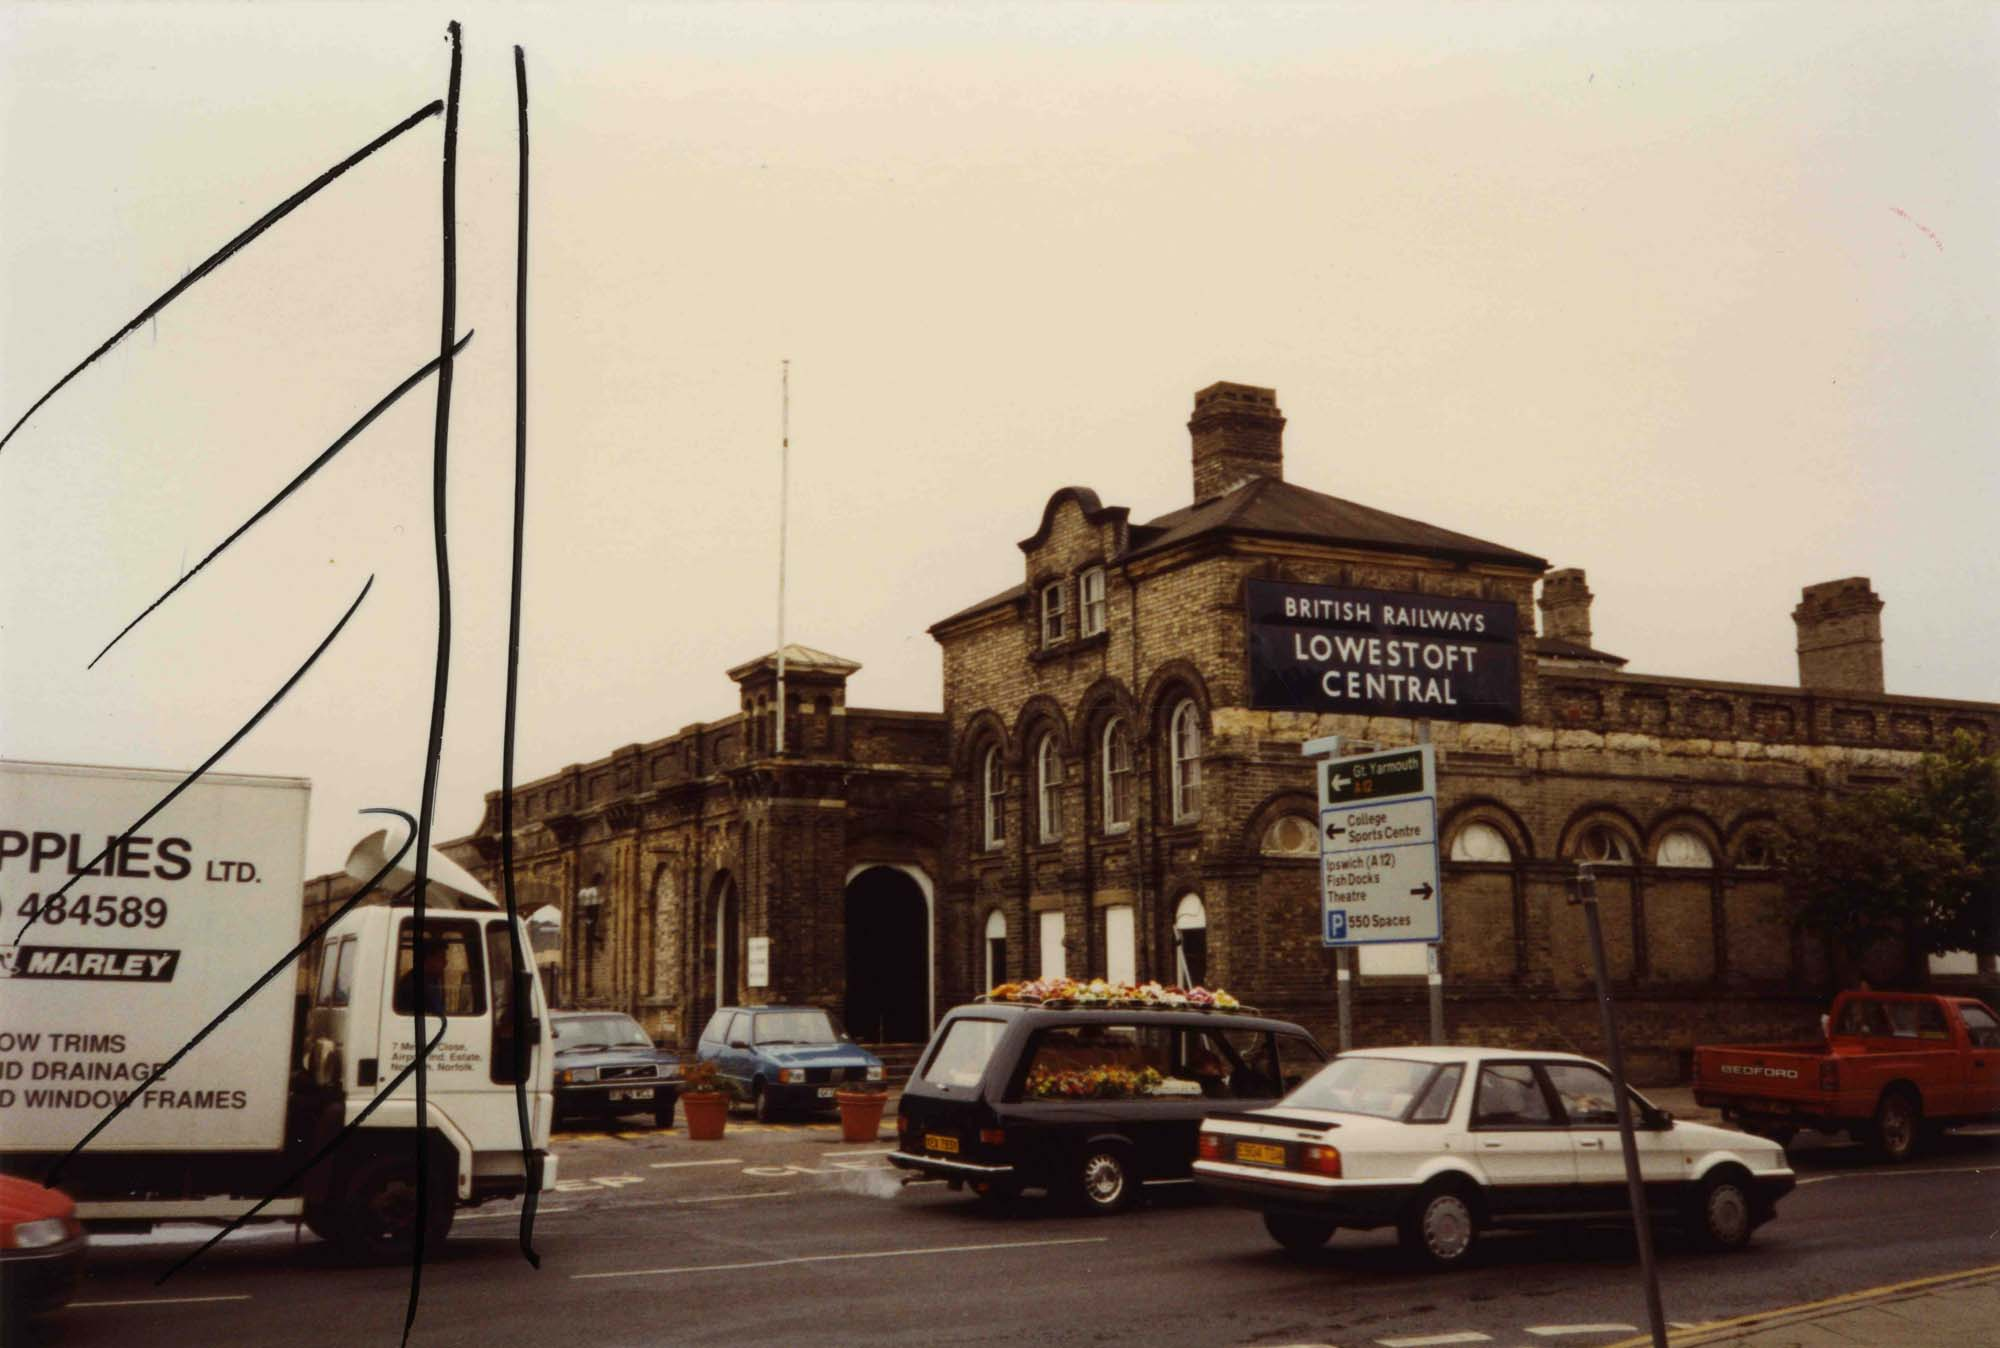 a photo of a railway station on a dreary day with cars including a hearse with a coffin in it moving along a street in front